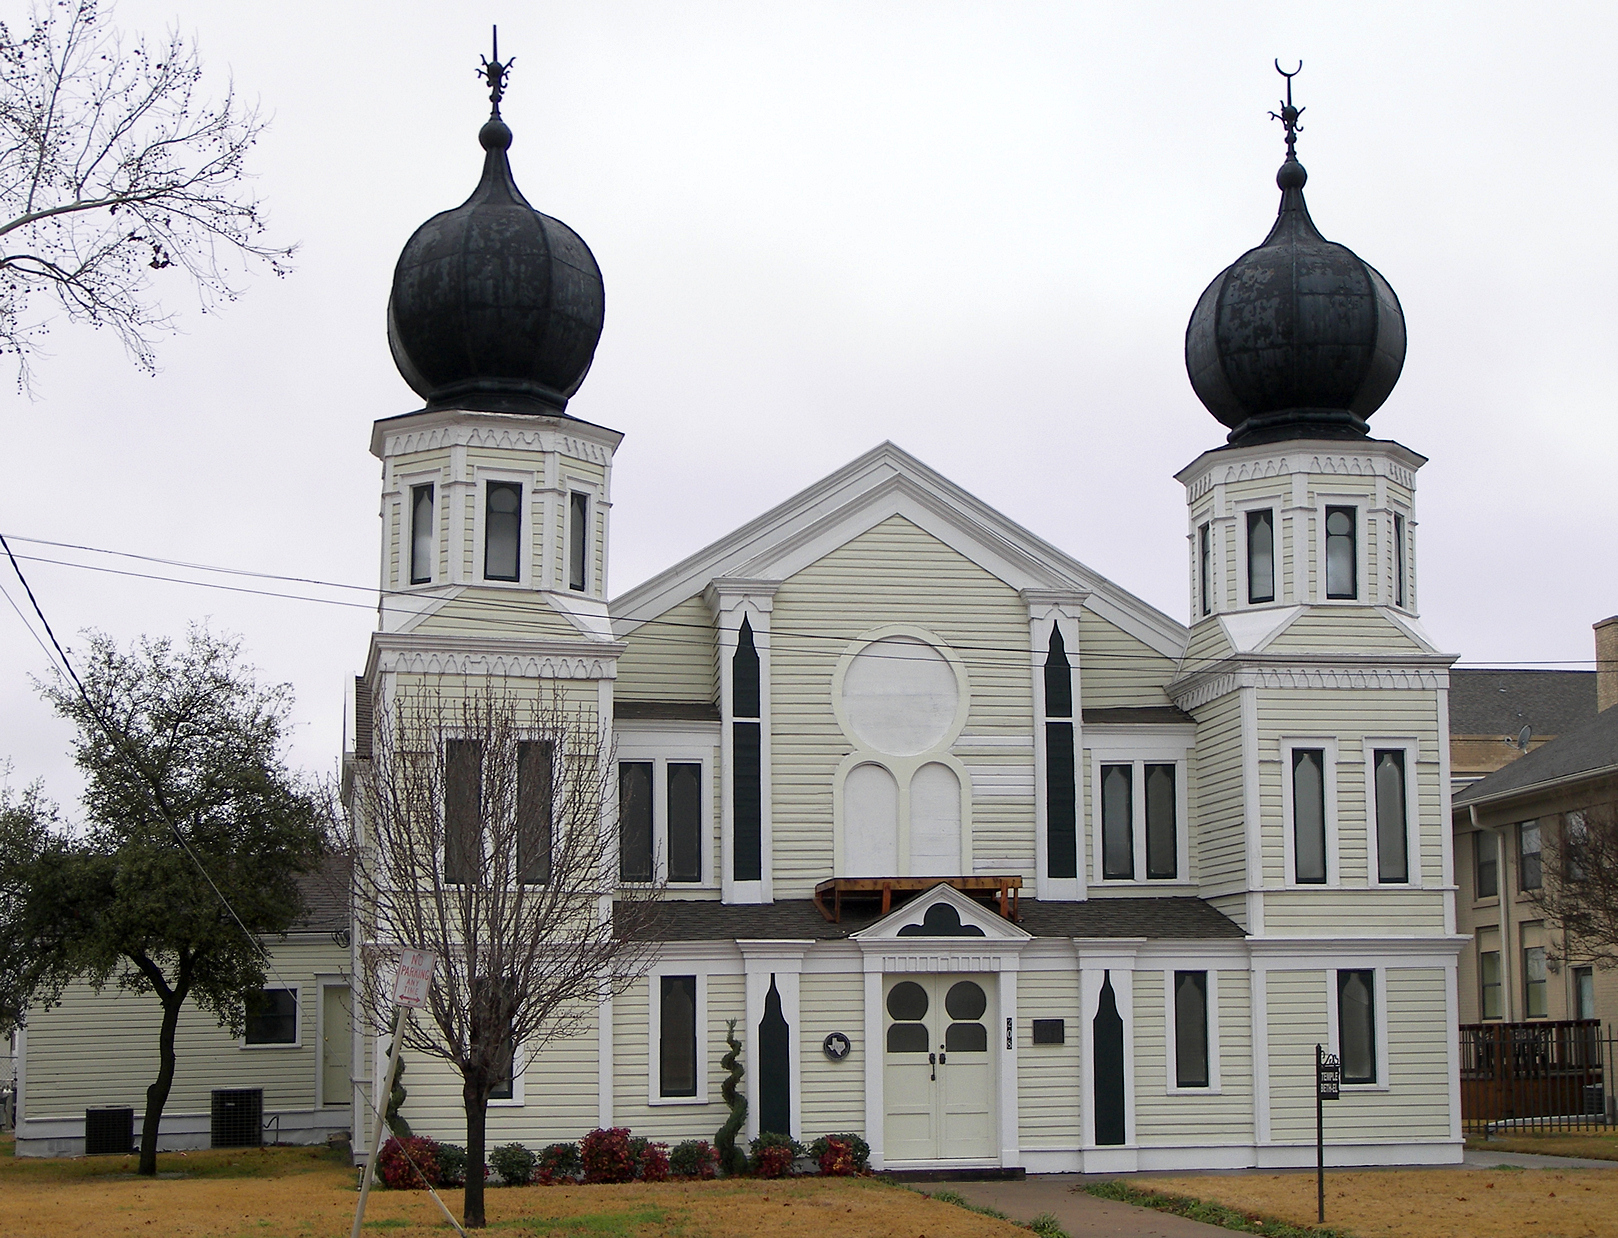 Temple Beth-El was built in 1900 and is a striking reminder of Corsicana's once thriving Jewish community of the first half of the 20th century.